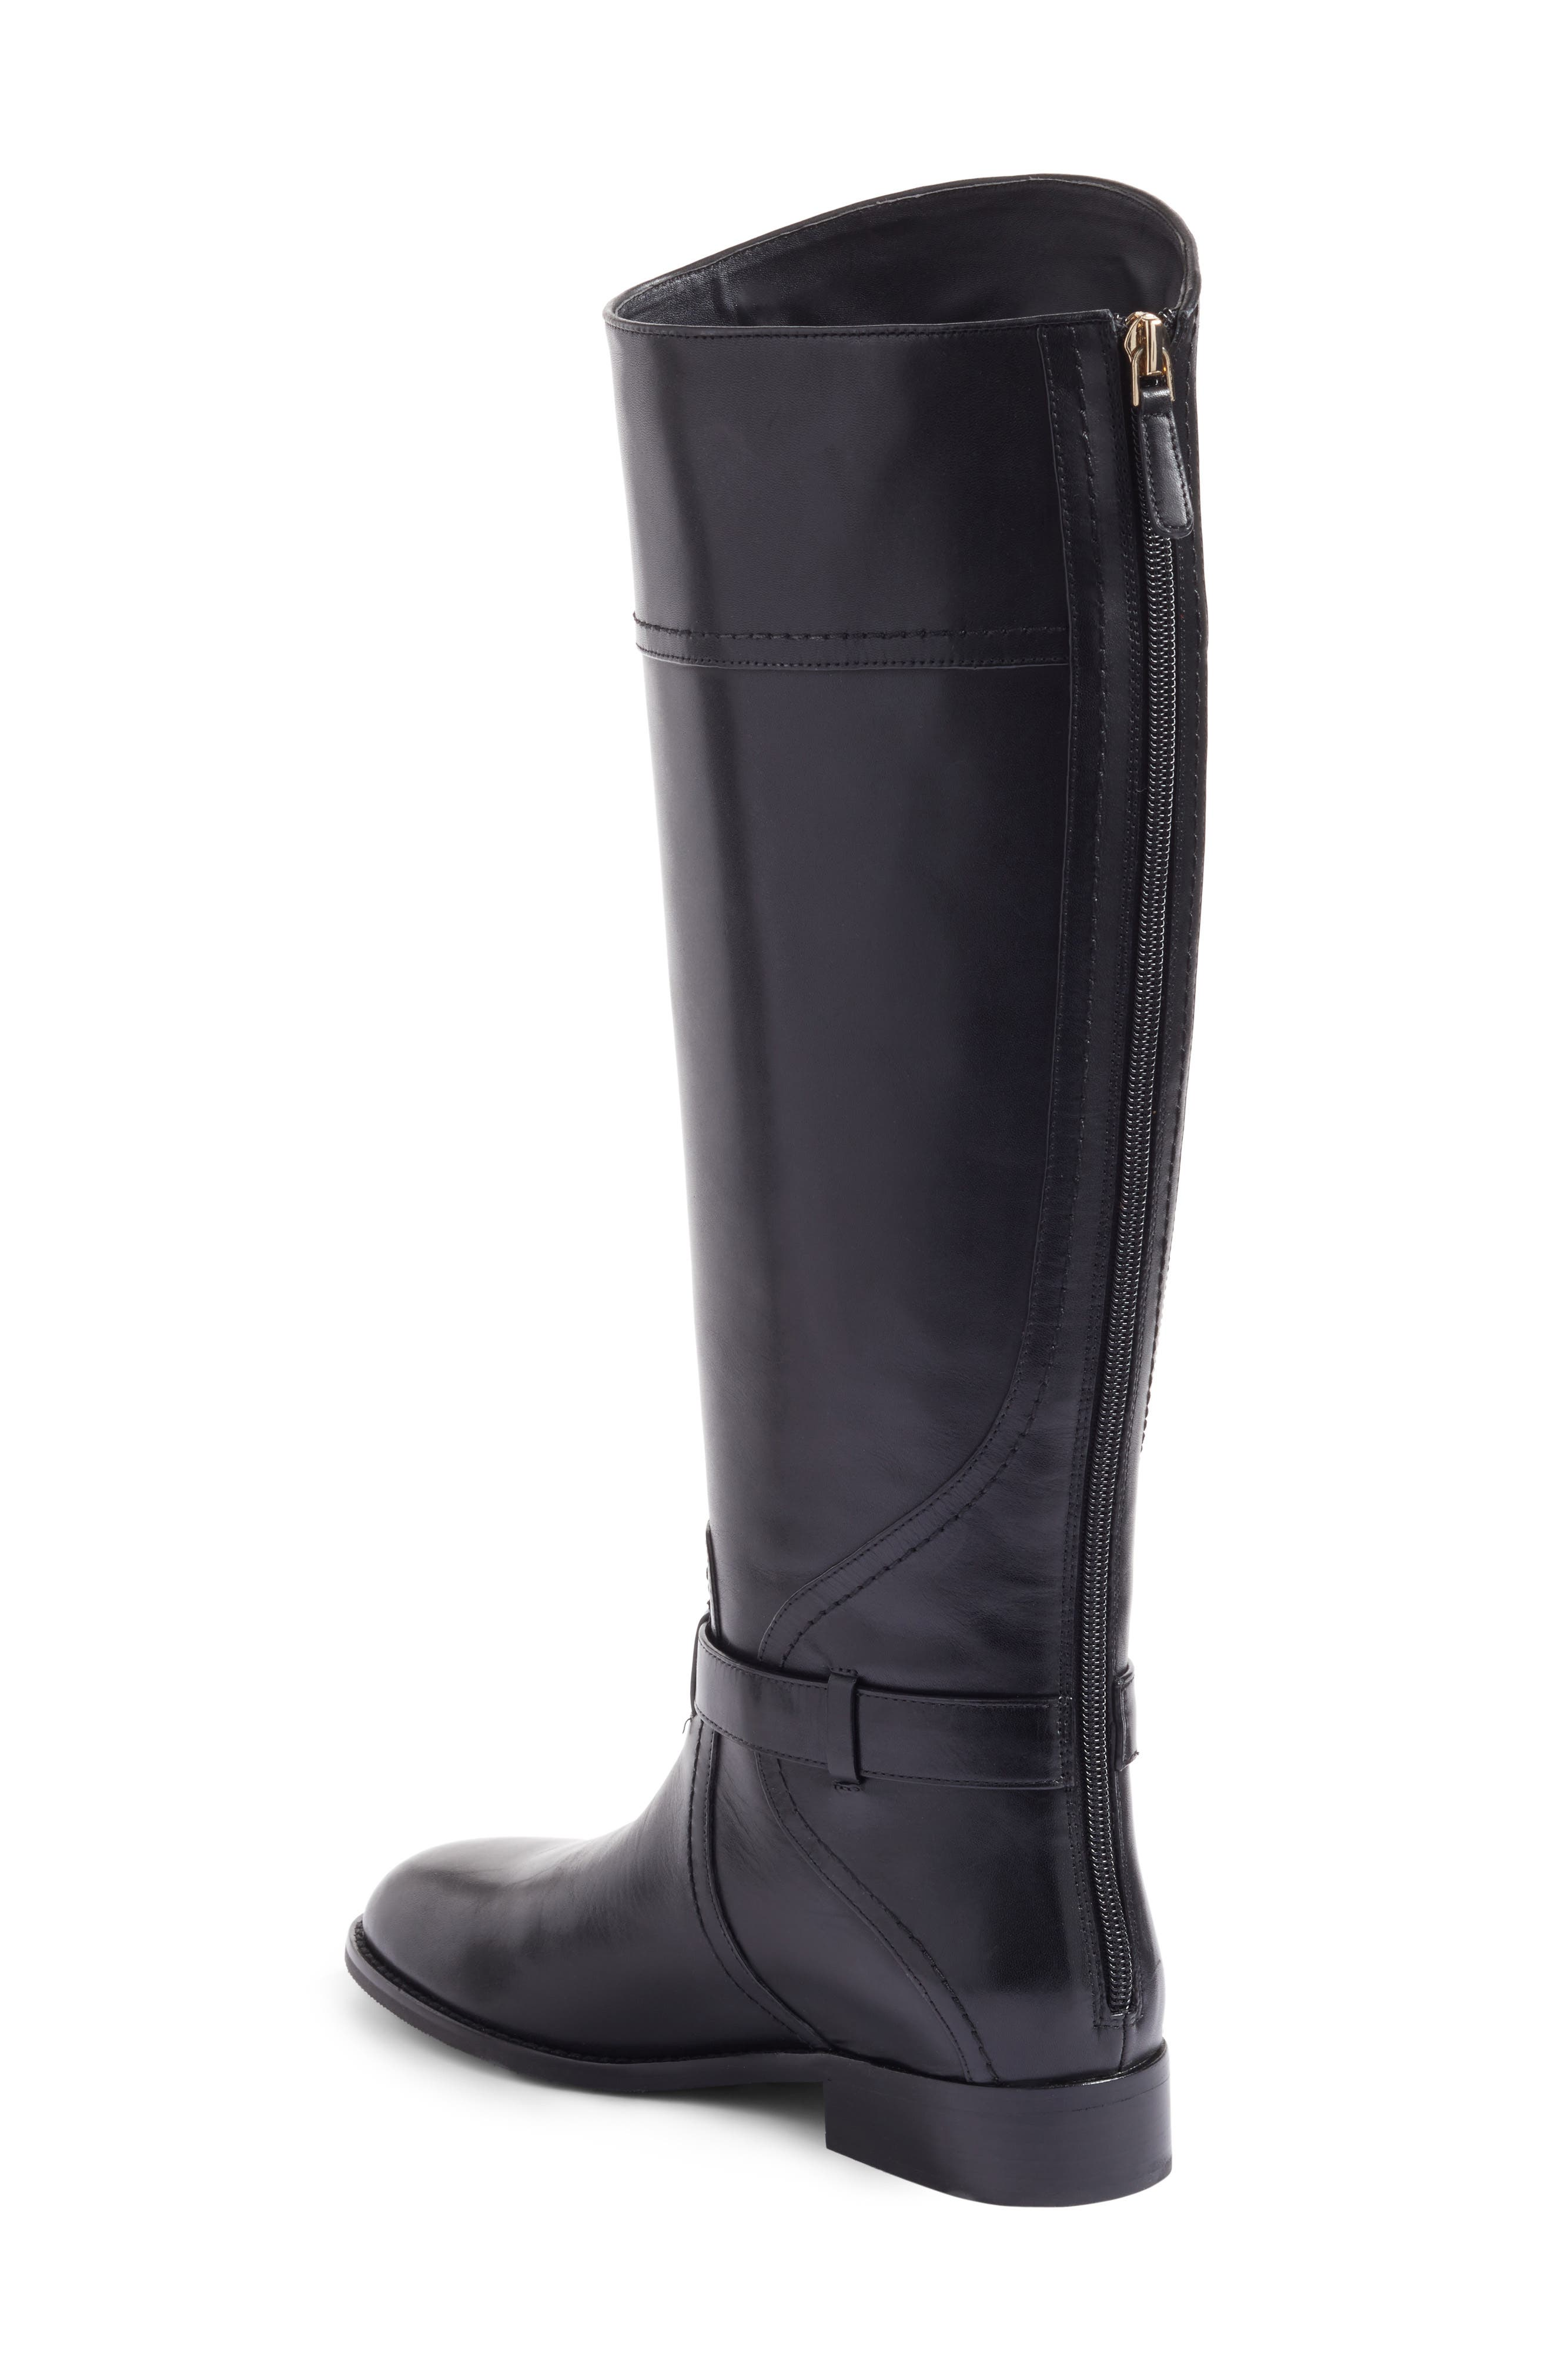 TORY BURCH, Adeline Boot, Alternate thumbnail 2, color, 001